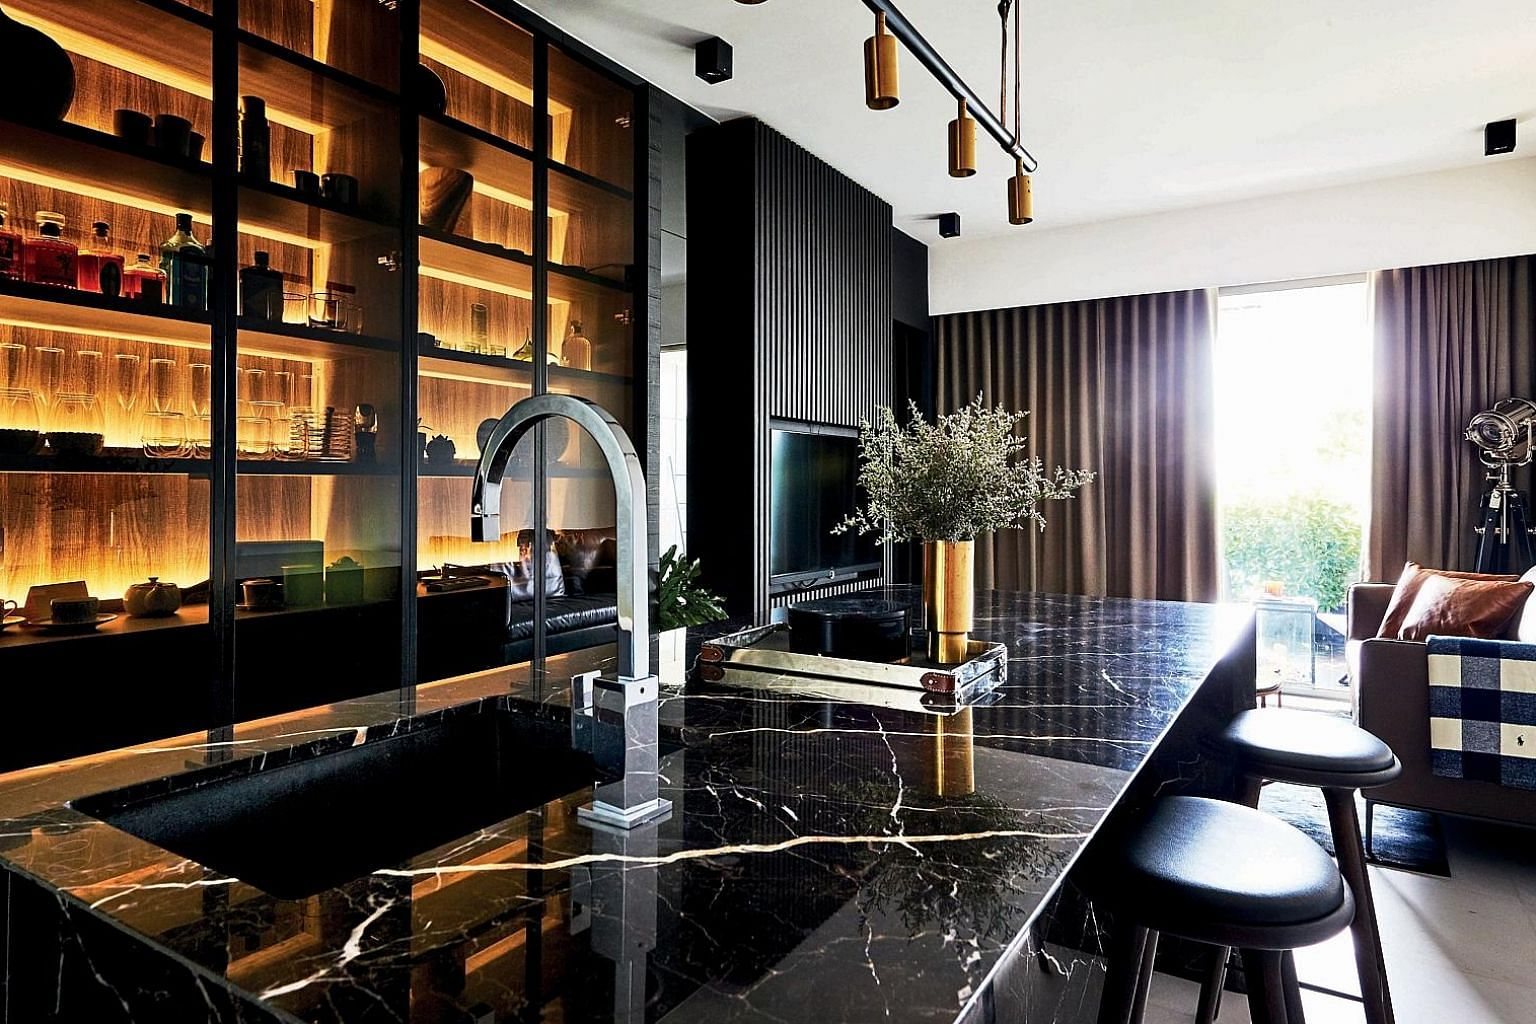 The sink, using Nero Marquina marble, was moved outside of the bathroom to create a bigger vanity area. The large island kitchen, holding the sink, dishwasher and wine fridge, occupies a central part of the apartment as the home owners entertain ofte